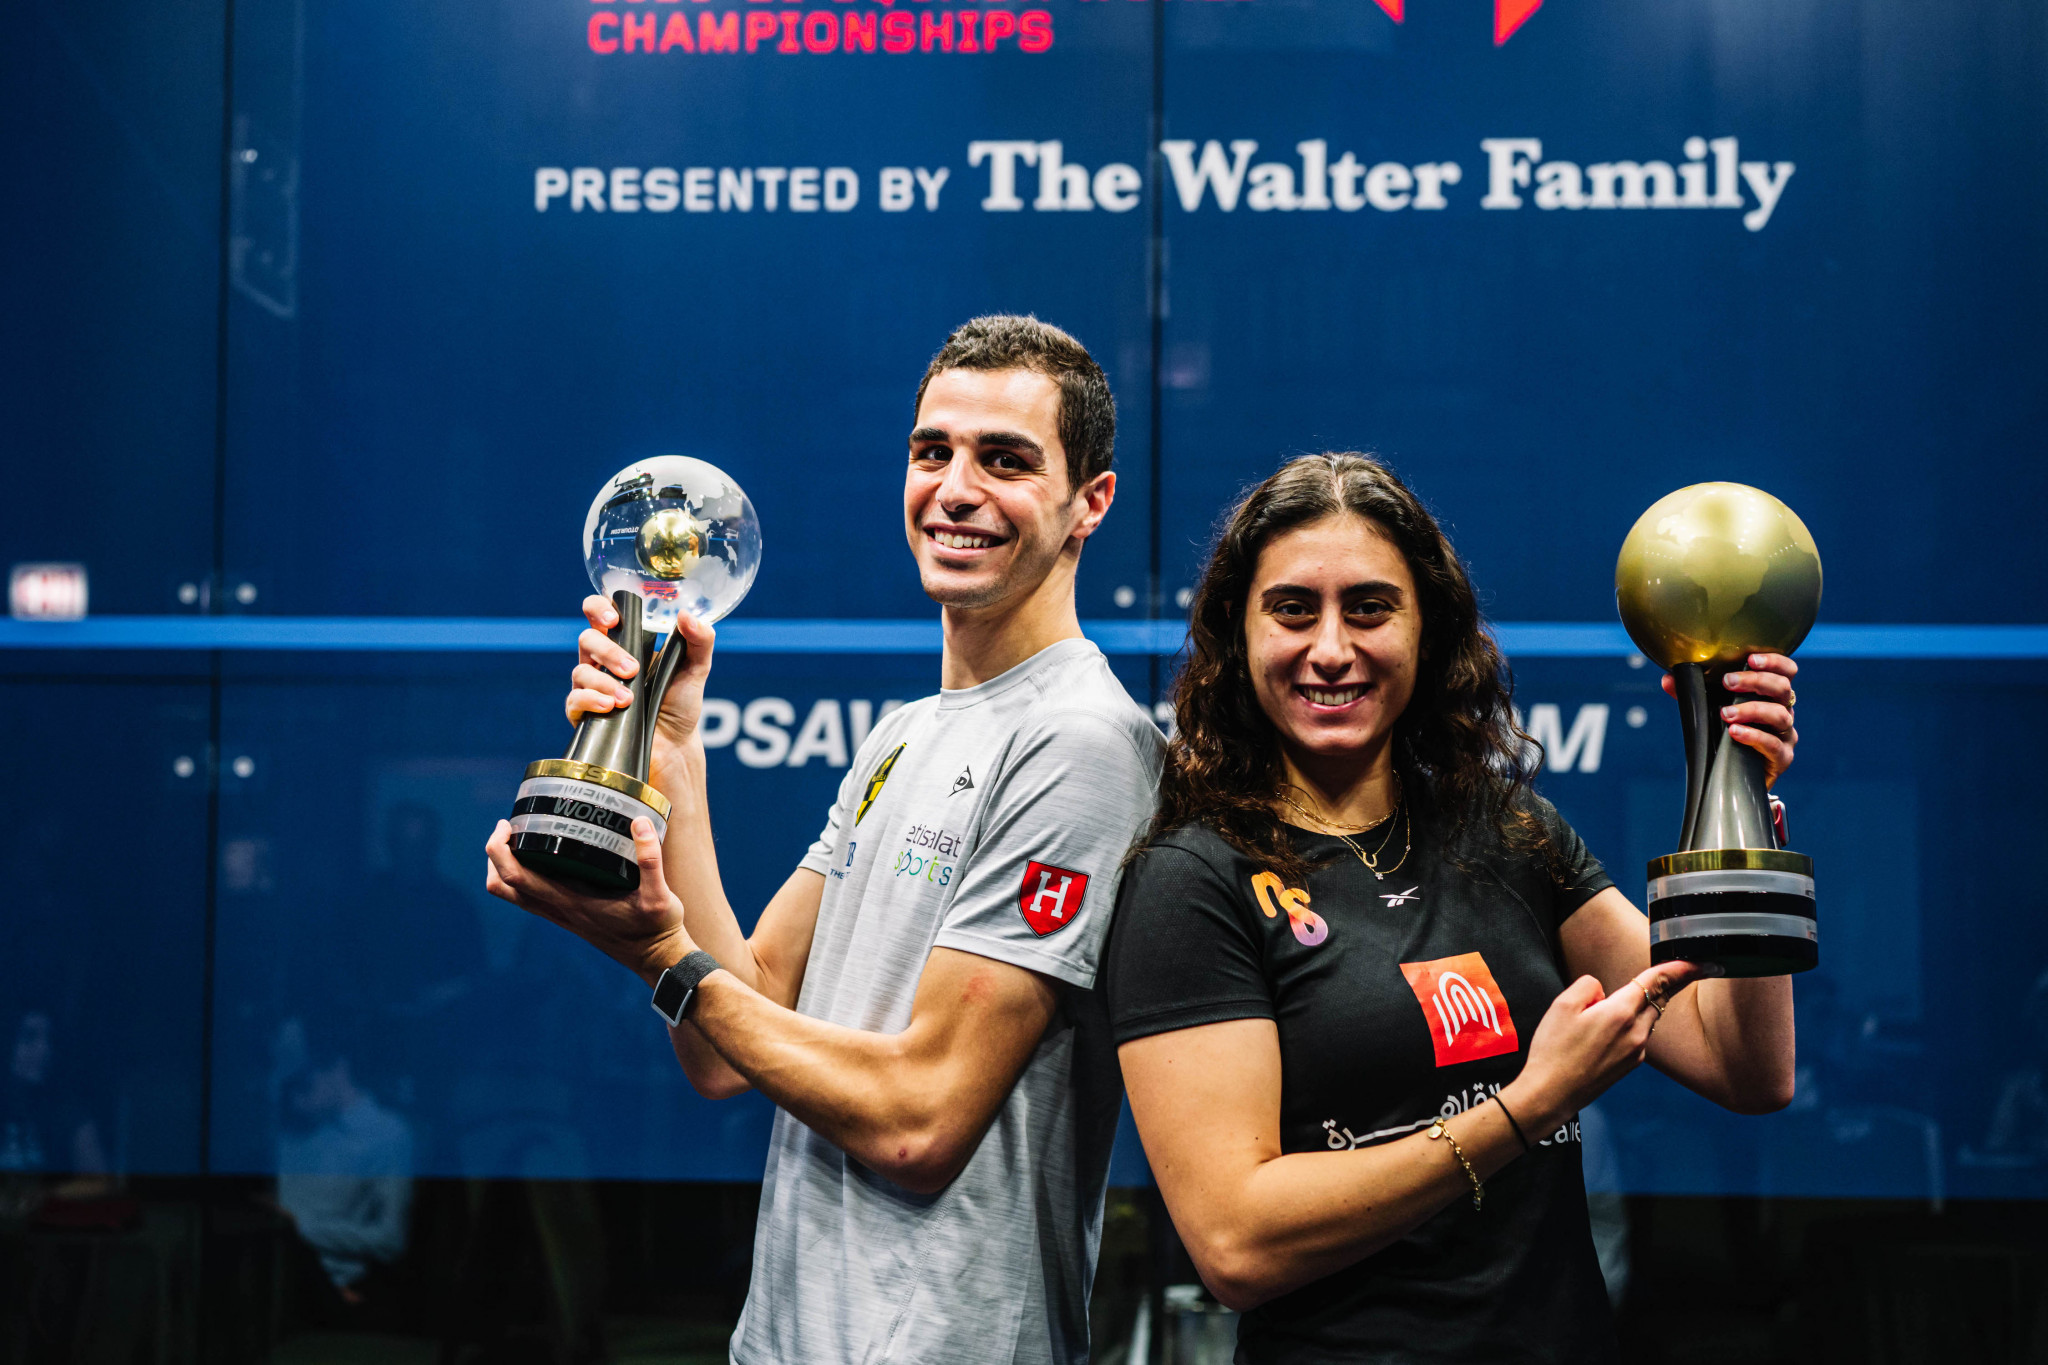 Farag and El Sherbini claim titles at PSA World Championships in Chicago